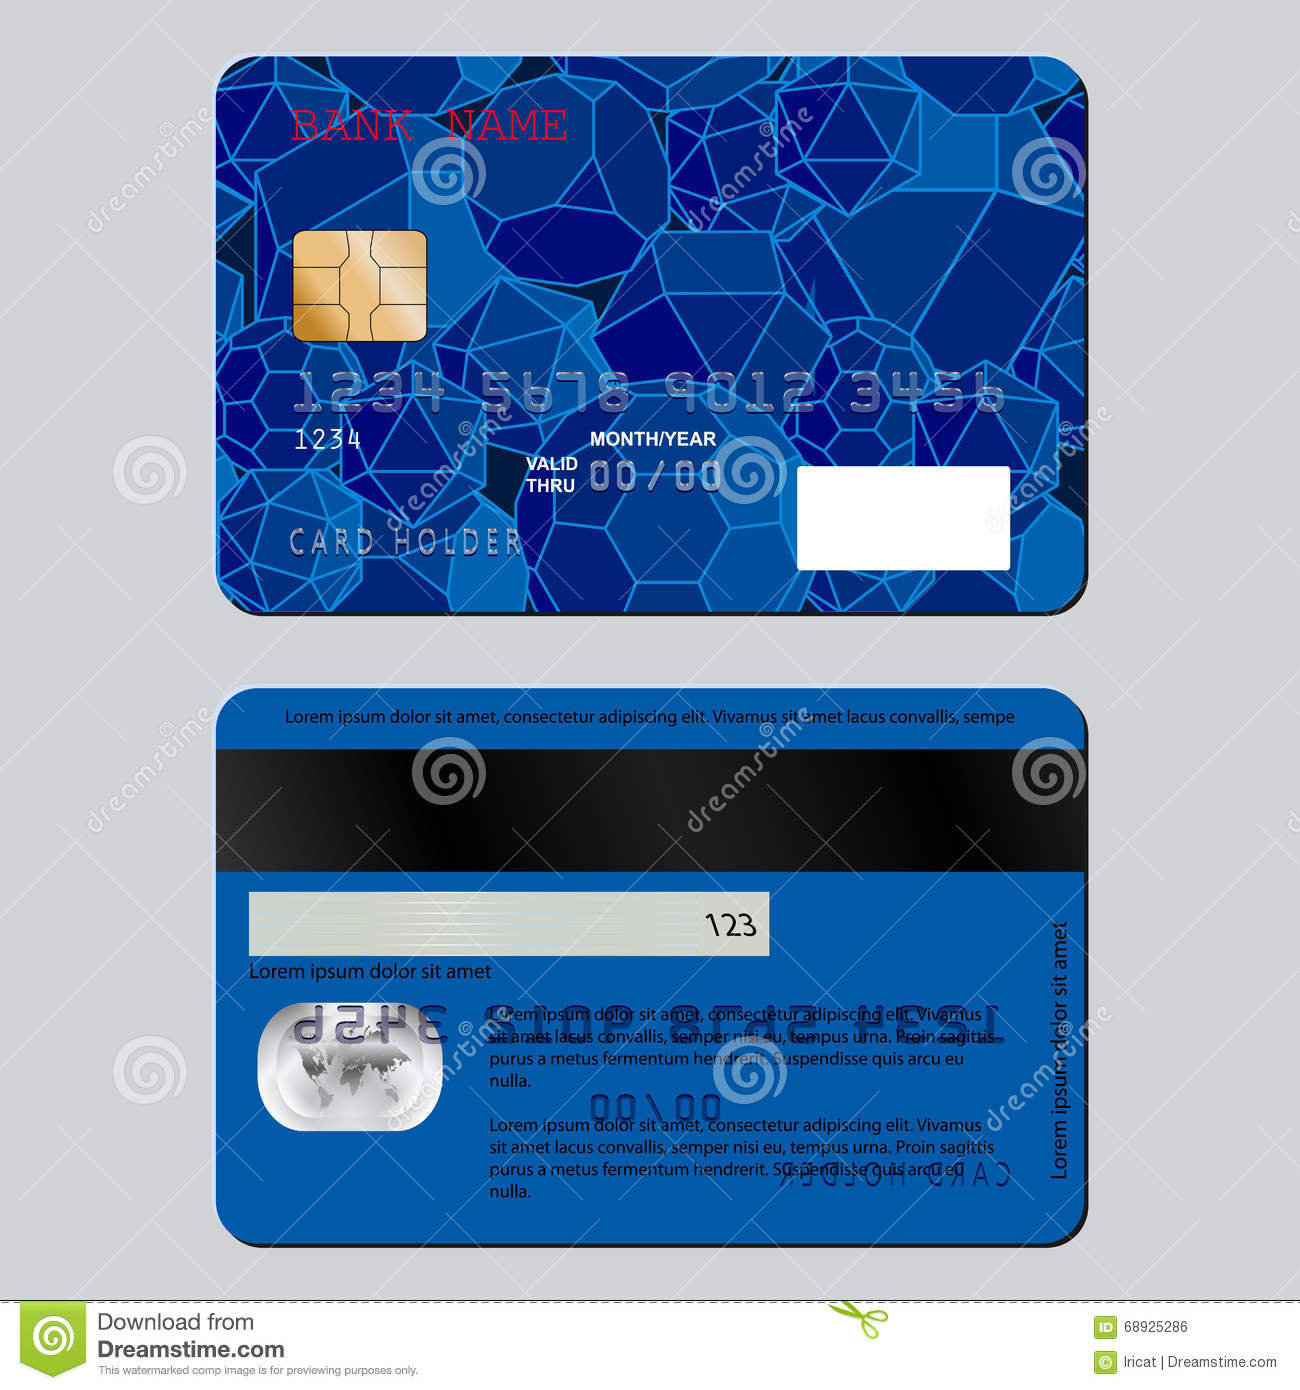 Sample Credit And Gift Cards Photography Image 5780652 – Sample Cards